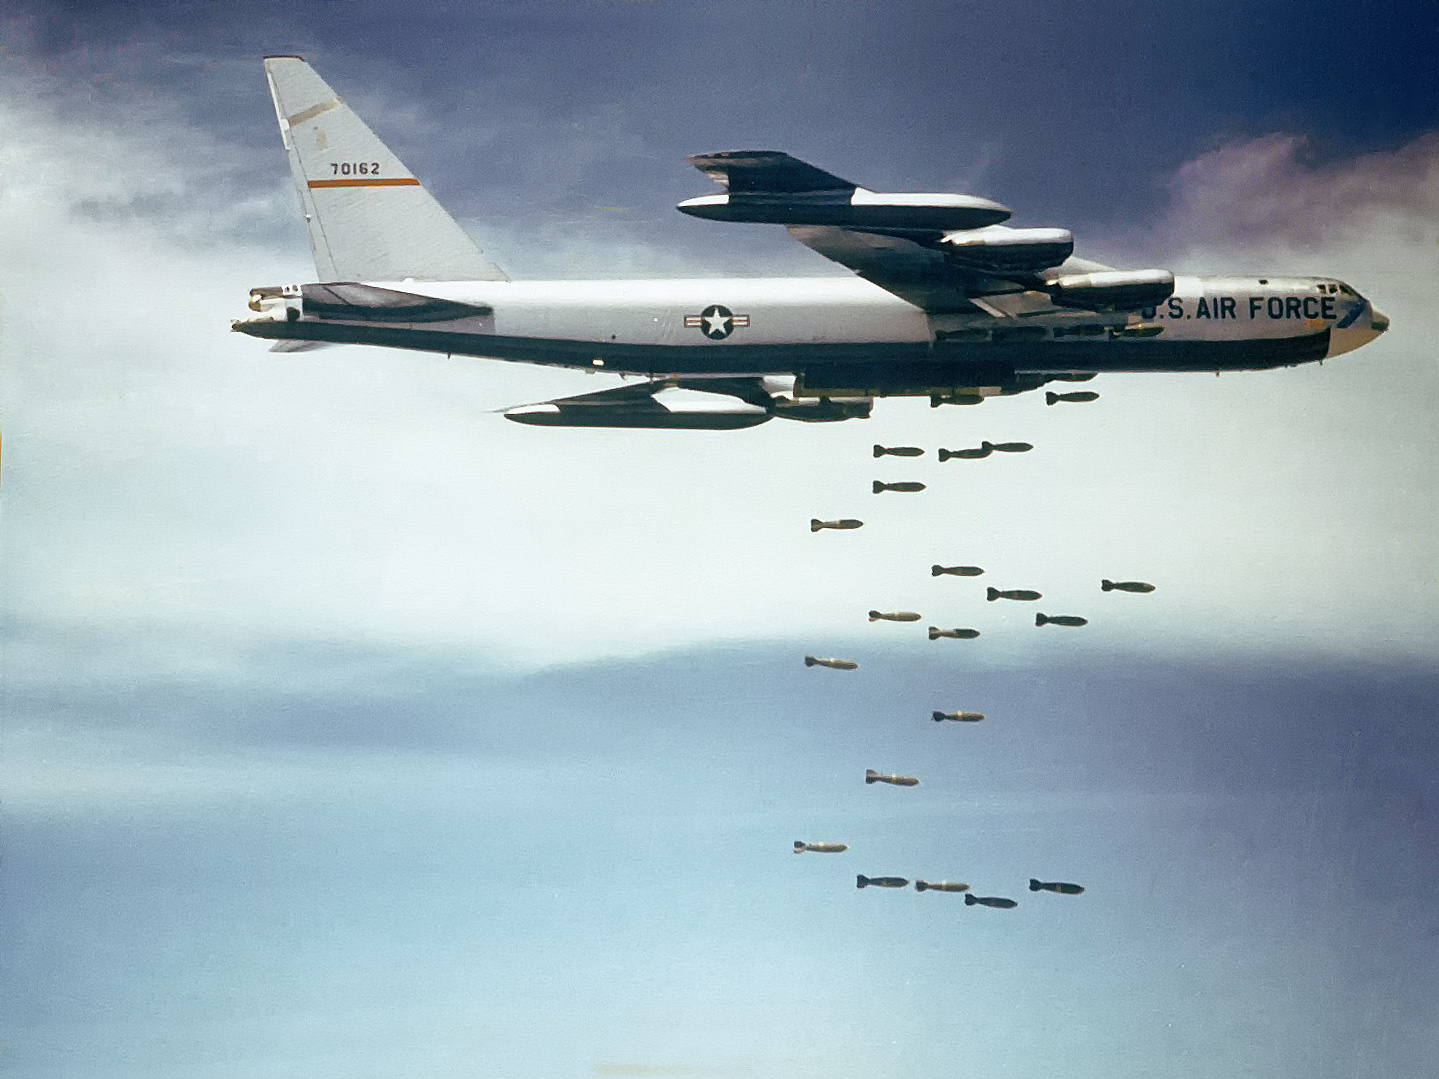 https://i0.wp.com/upload.wikimedia.org/wikipedia/commons/c/c3/Boeing_B-52_dropping_bombs.jpg